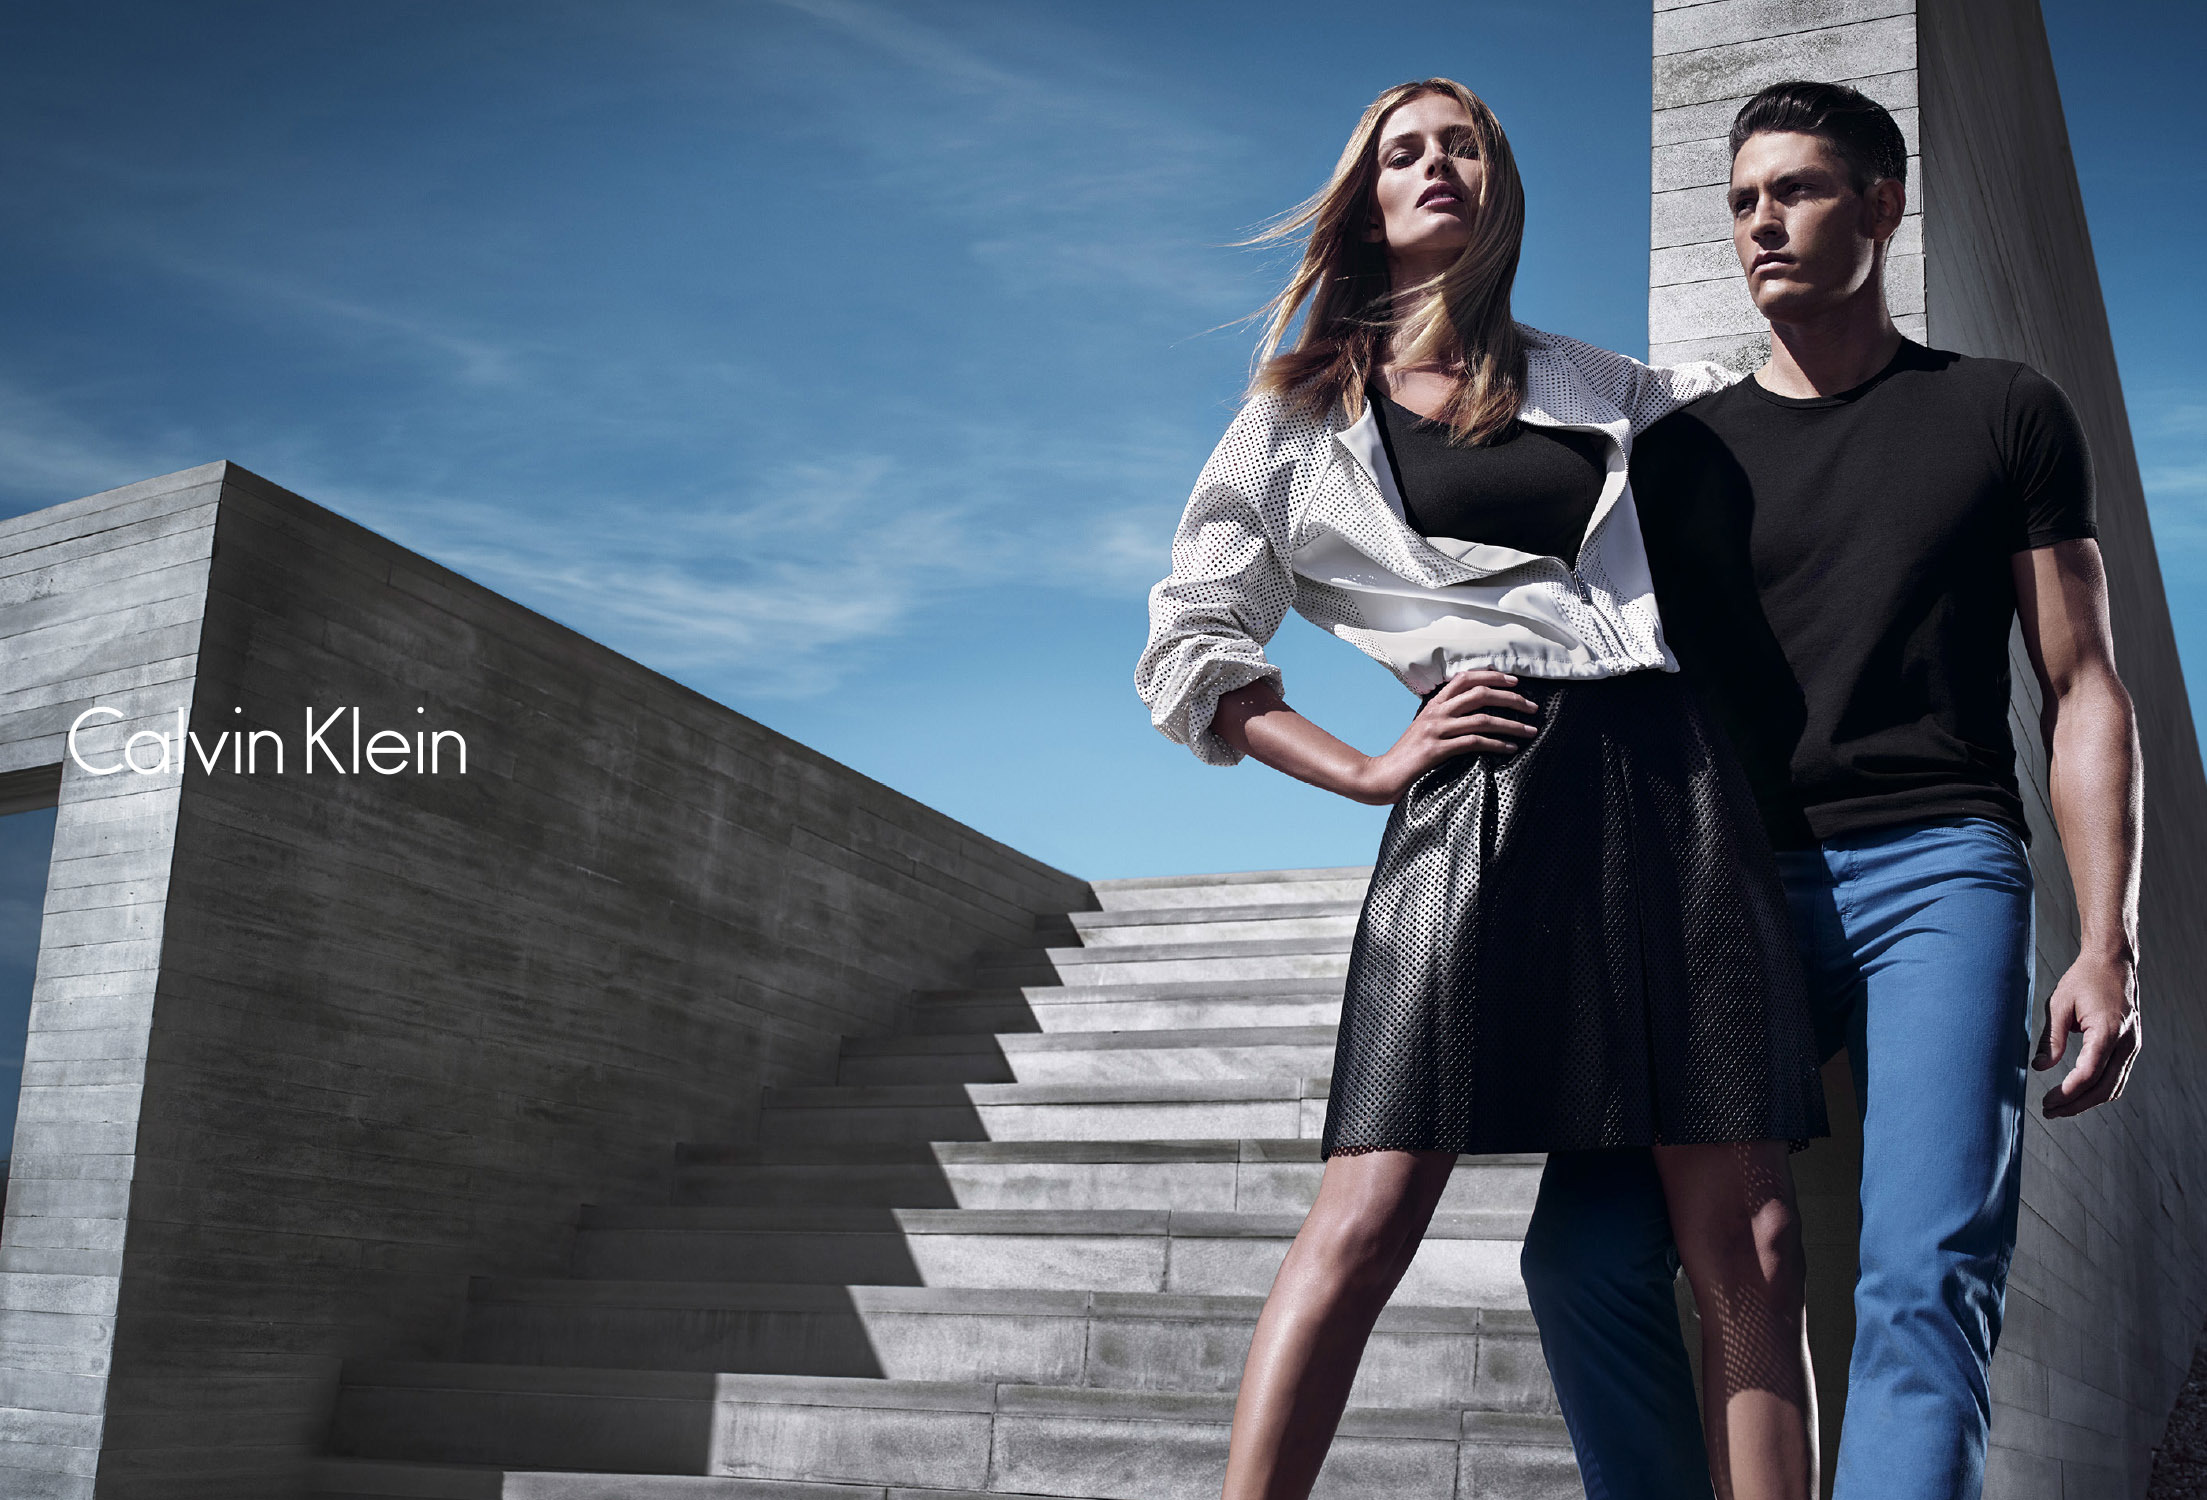 calvin-klein-clothing-computer-background-899-918-hd-wallpapers